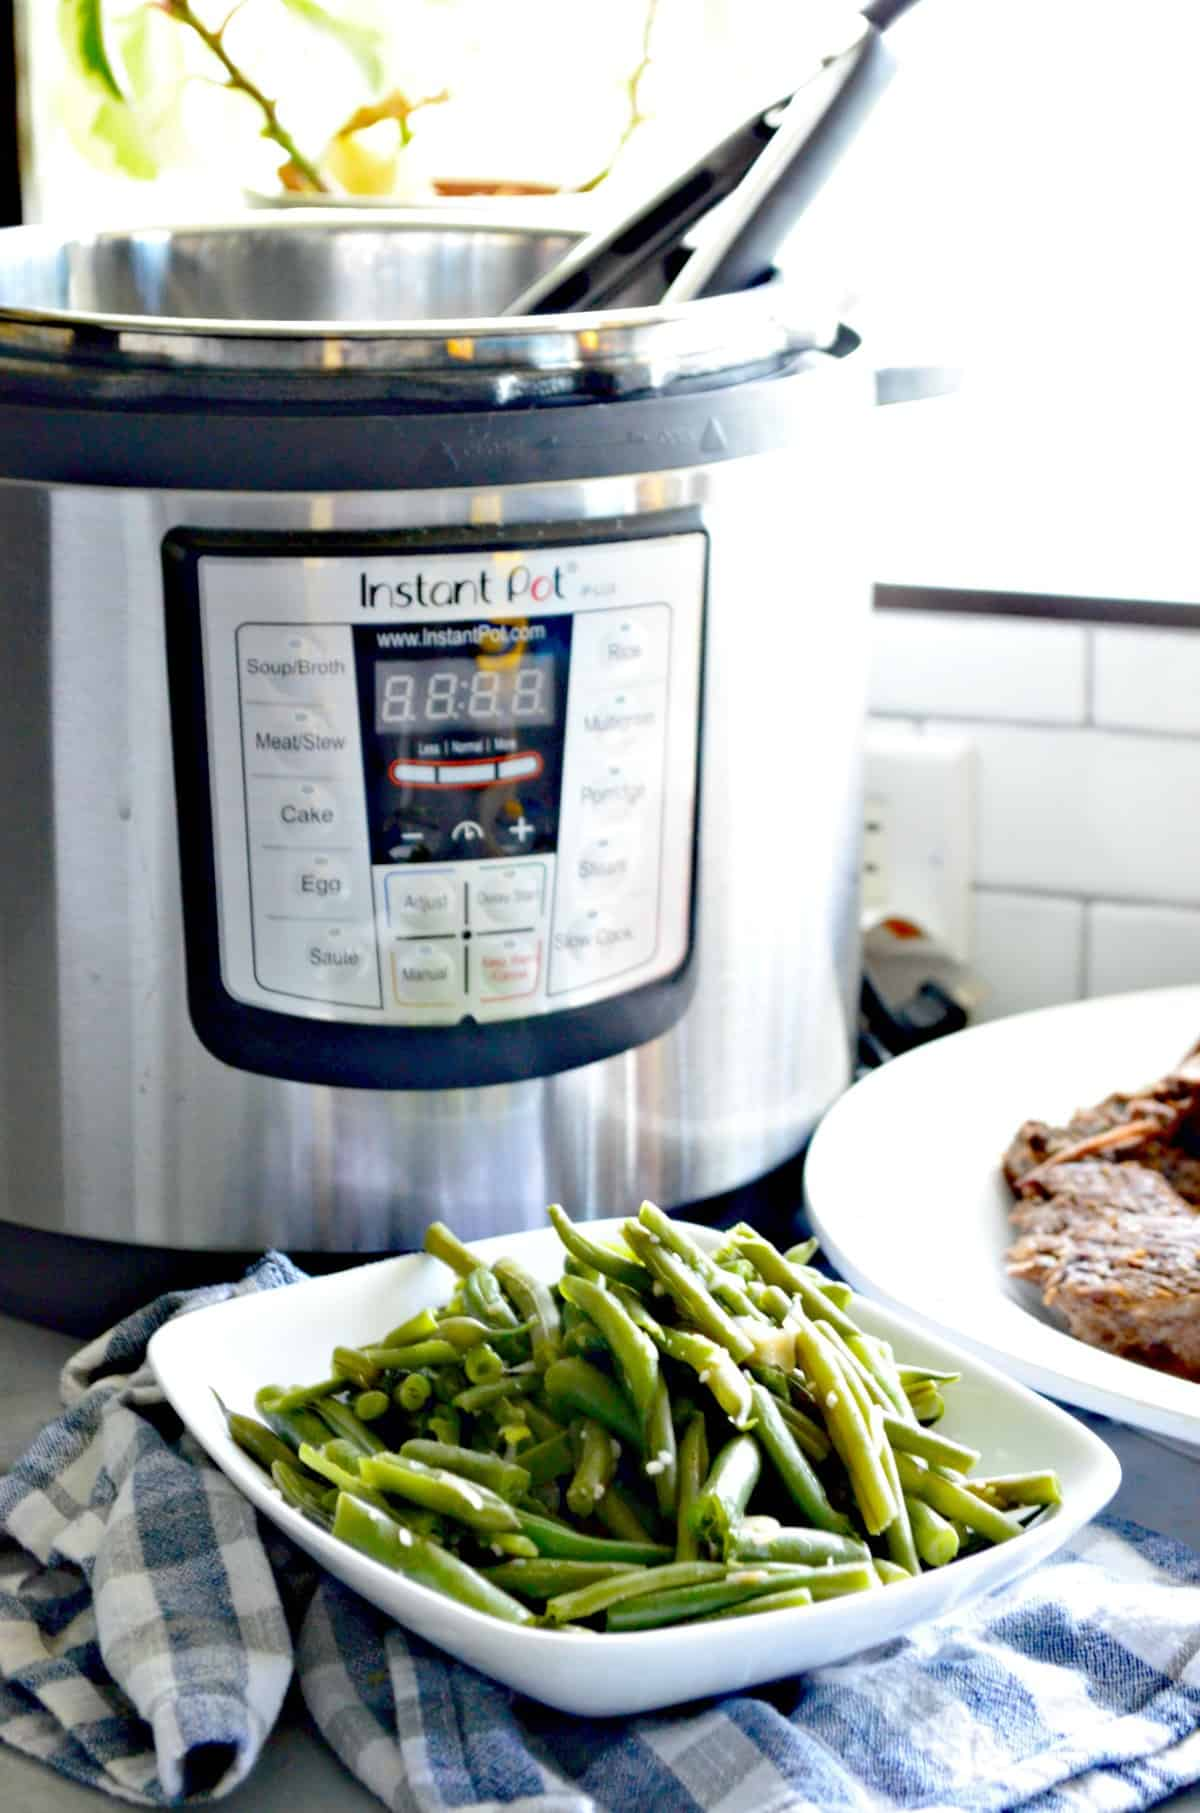 Plated cooked green beans in front of instant pot.